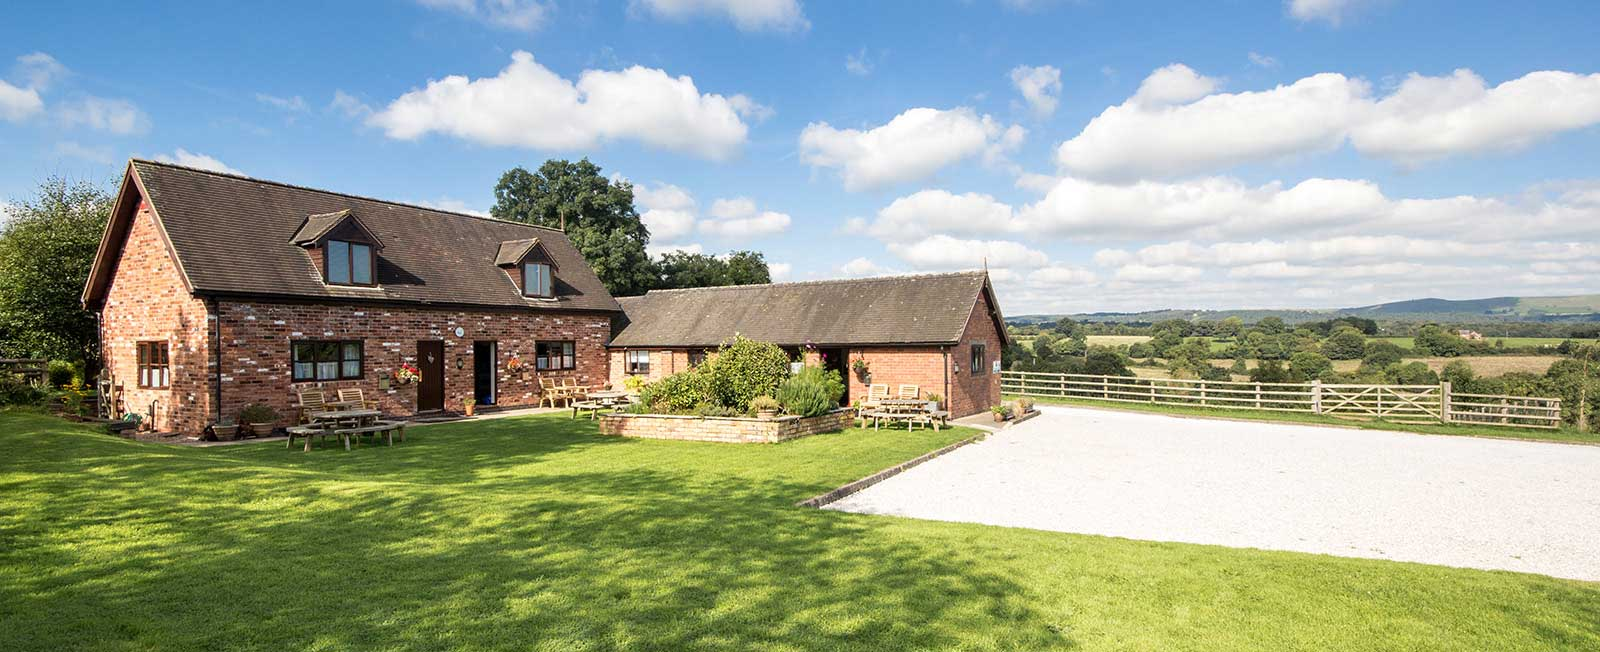 Lower Micklin Farm Holiday Cottages near Alton Towers